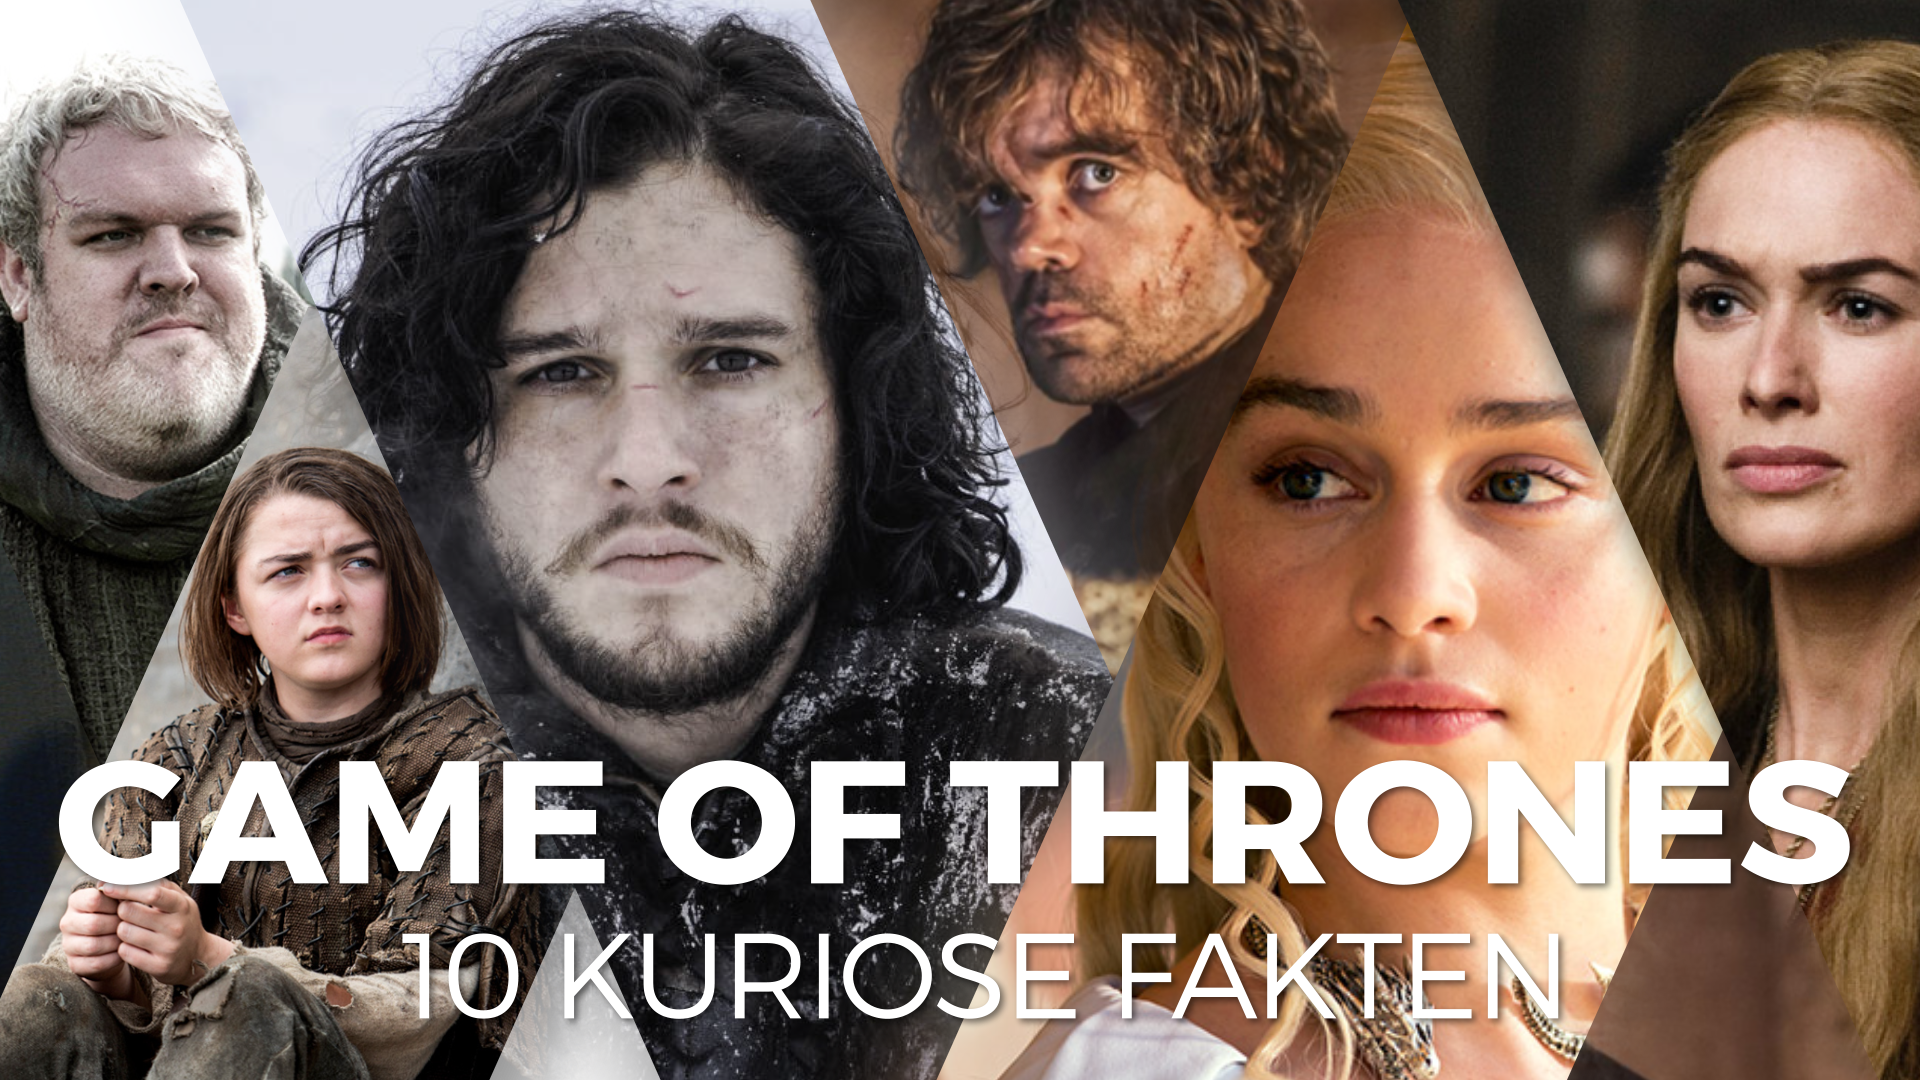 10 kuriose Fakten über Game of Thrones